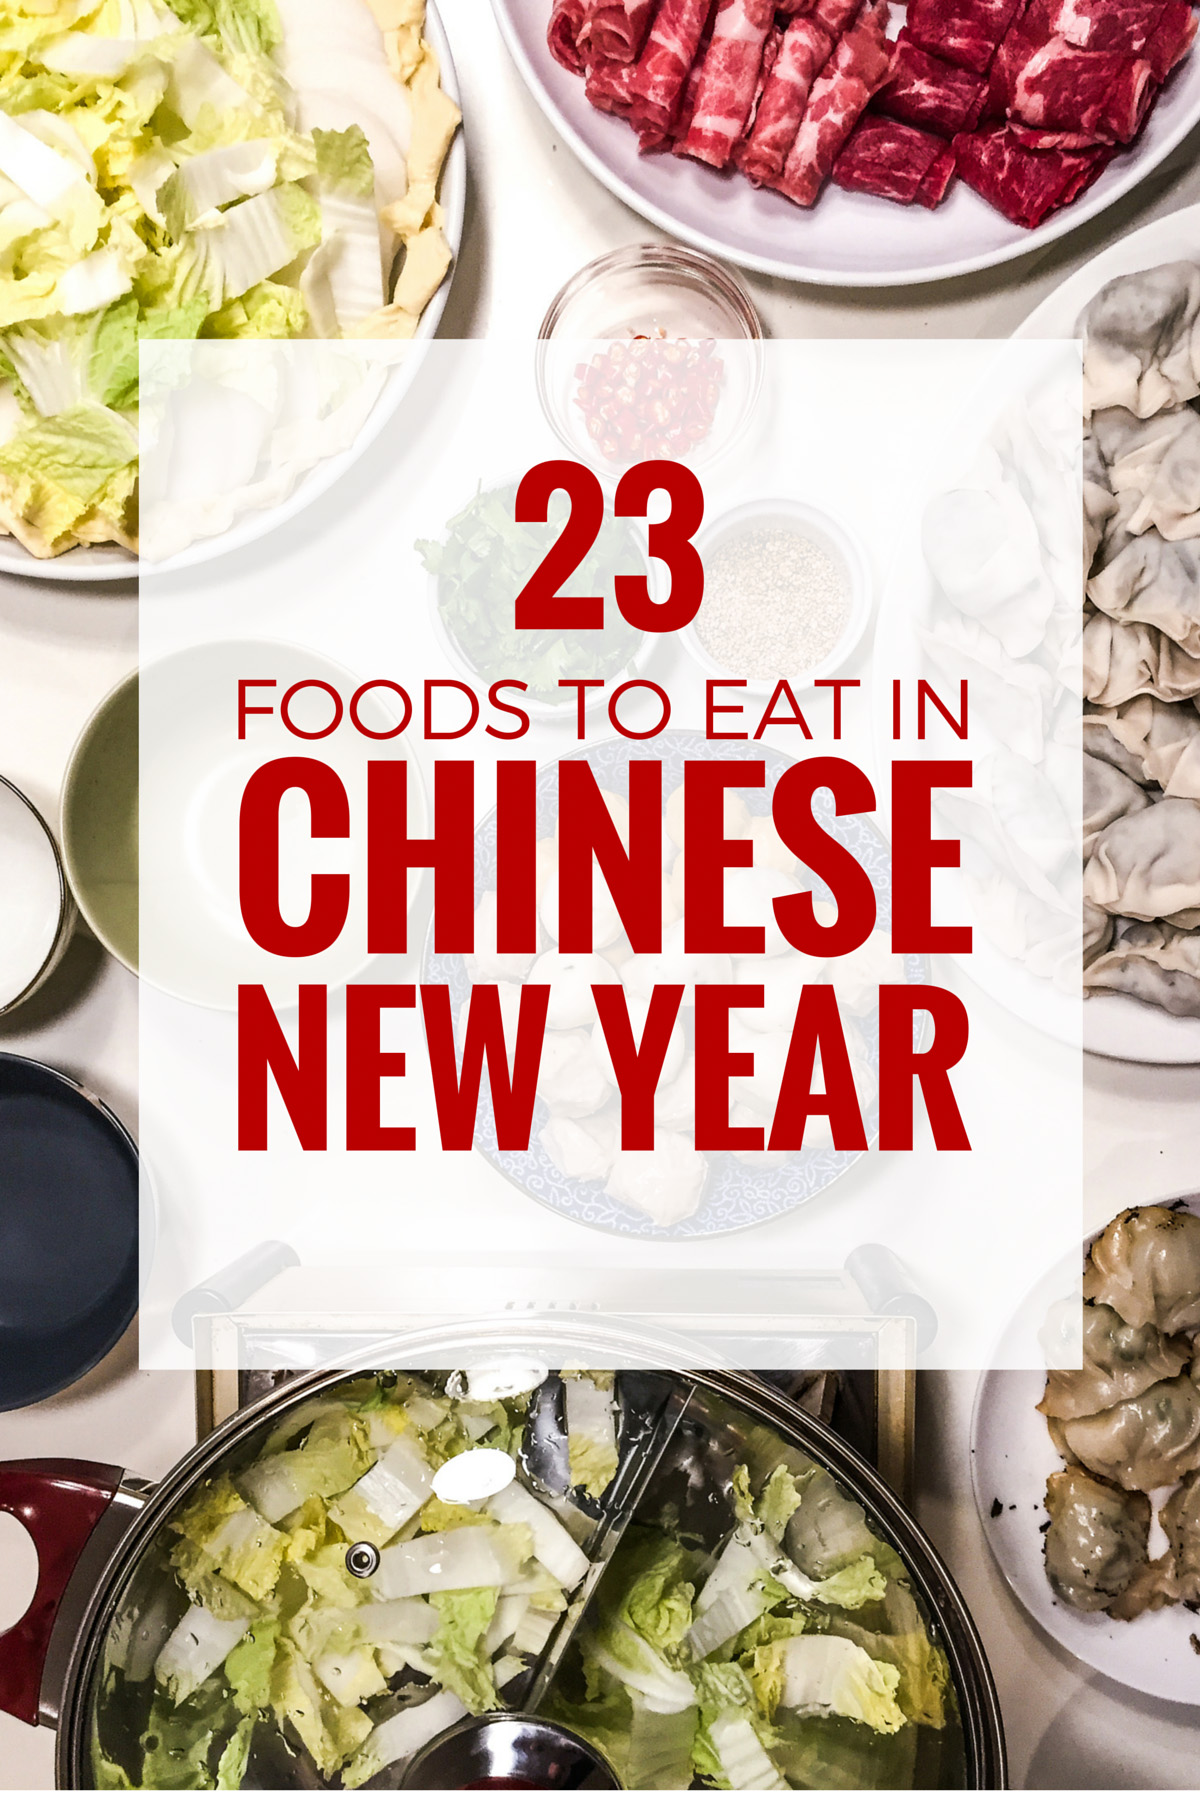 Cuisine Same Meaning Chinese New Year Food 23 Dishes You Cannot Miss